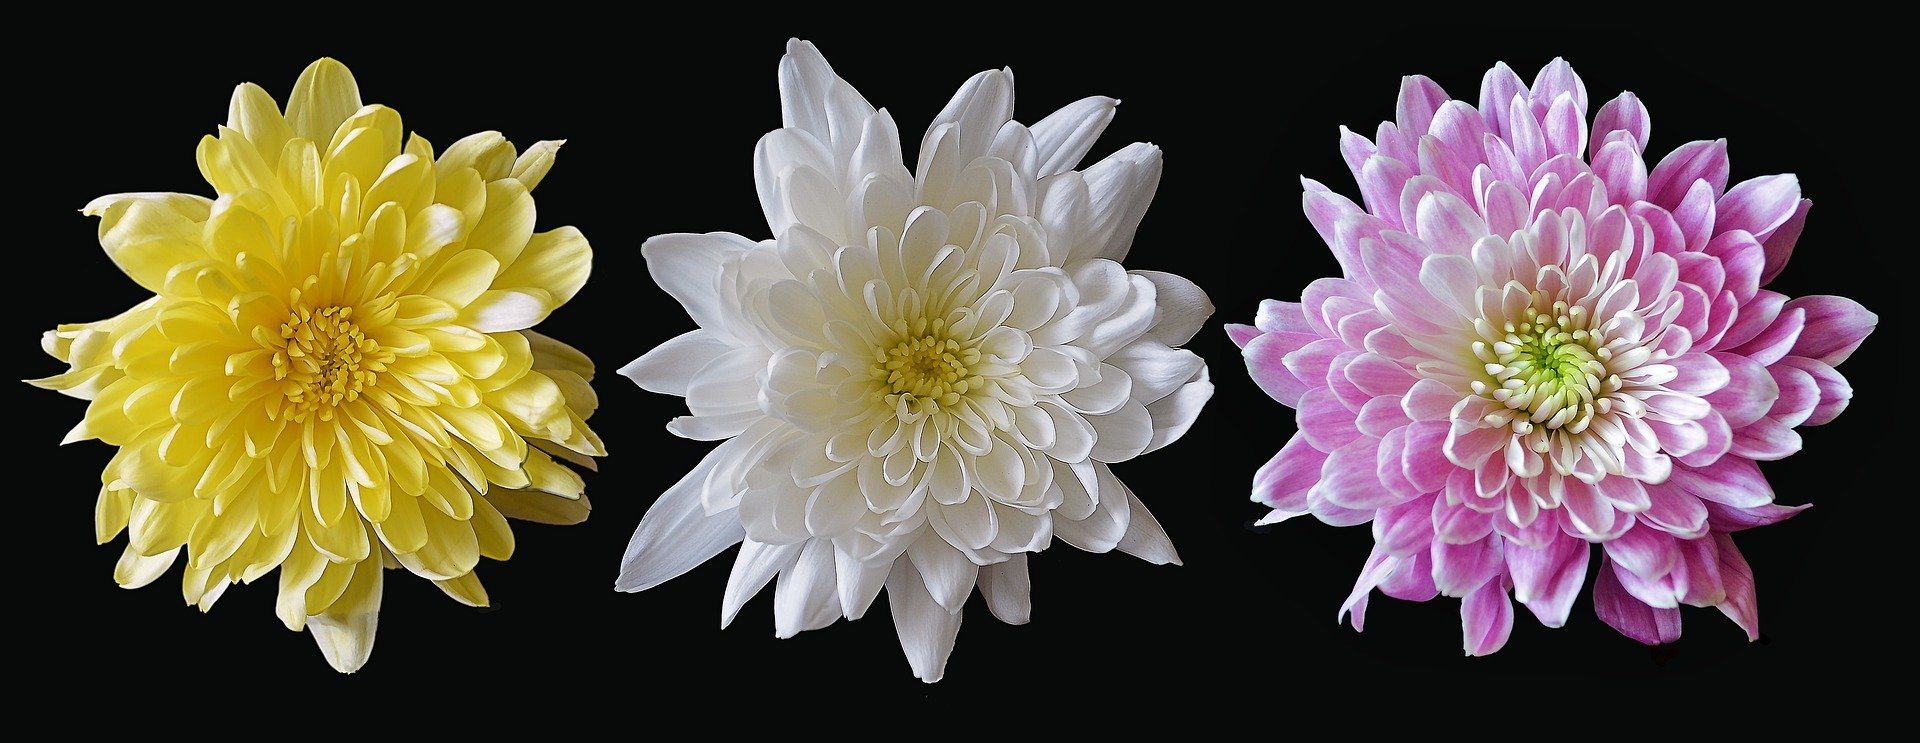 A yellow, white, and pink chrysanthemum   Photo: Pixabay/A Quinn